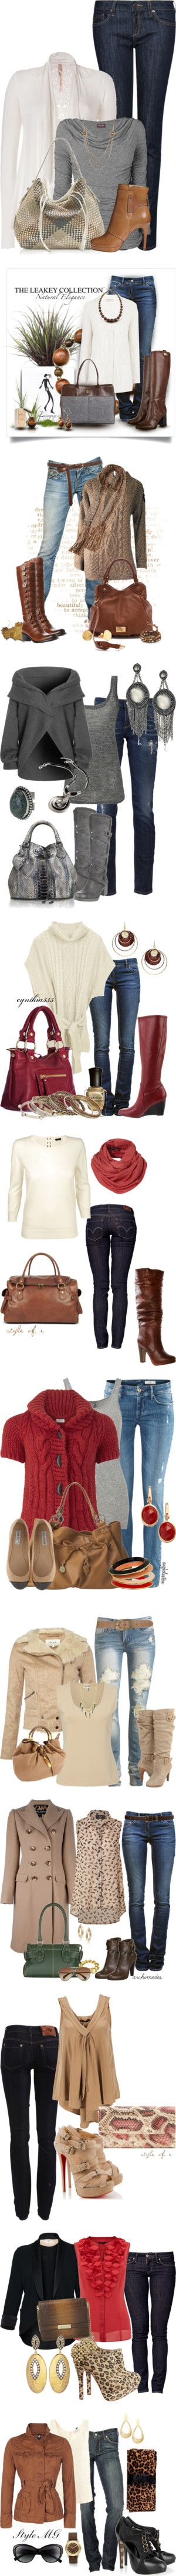 : Outfits.